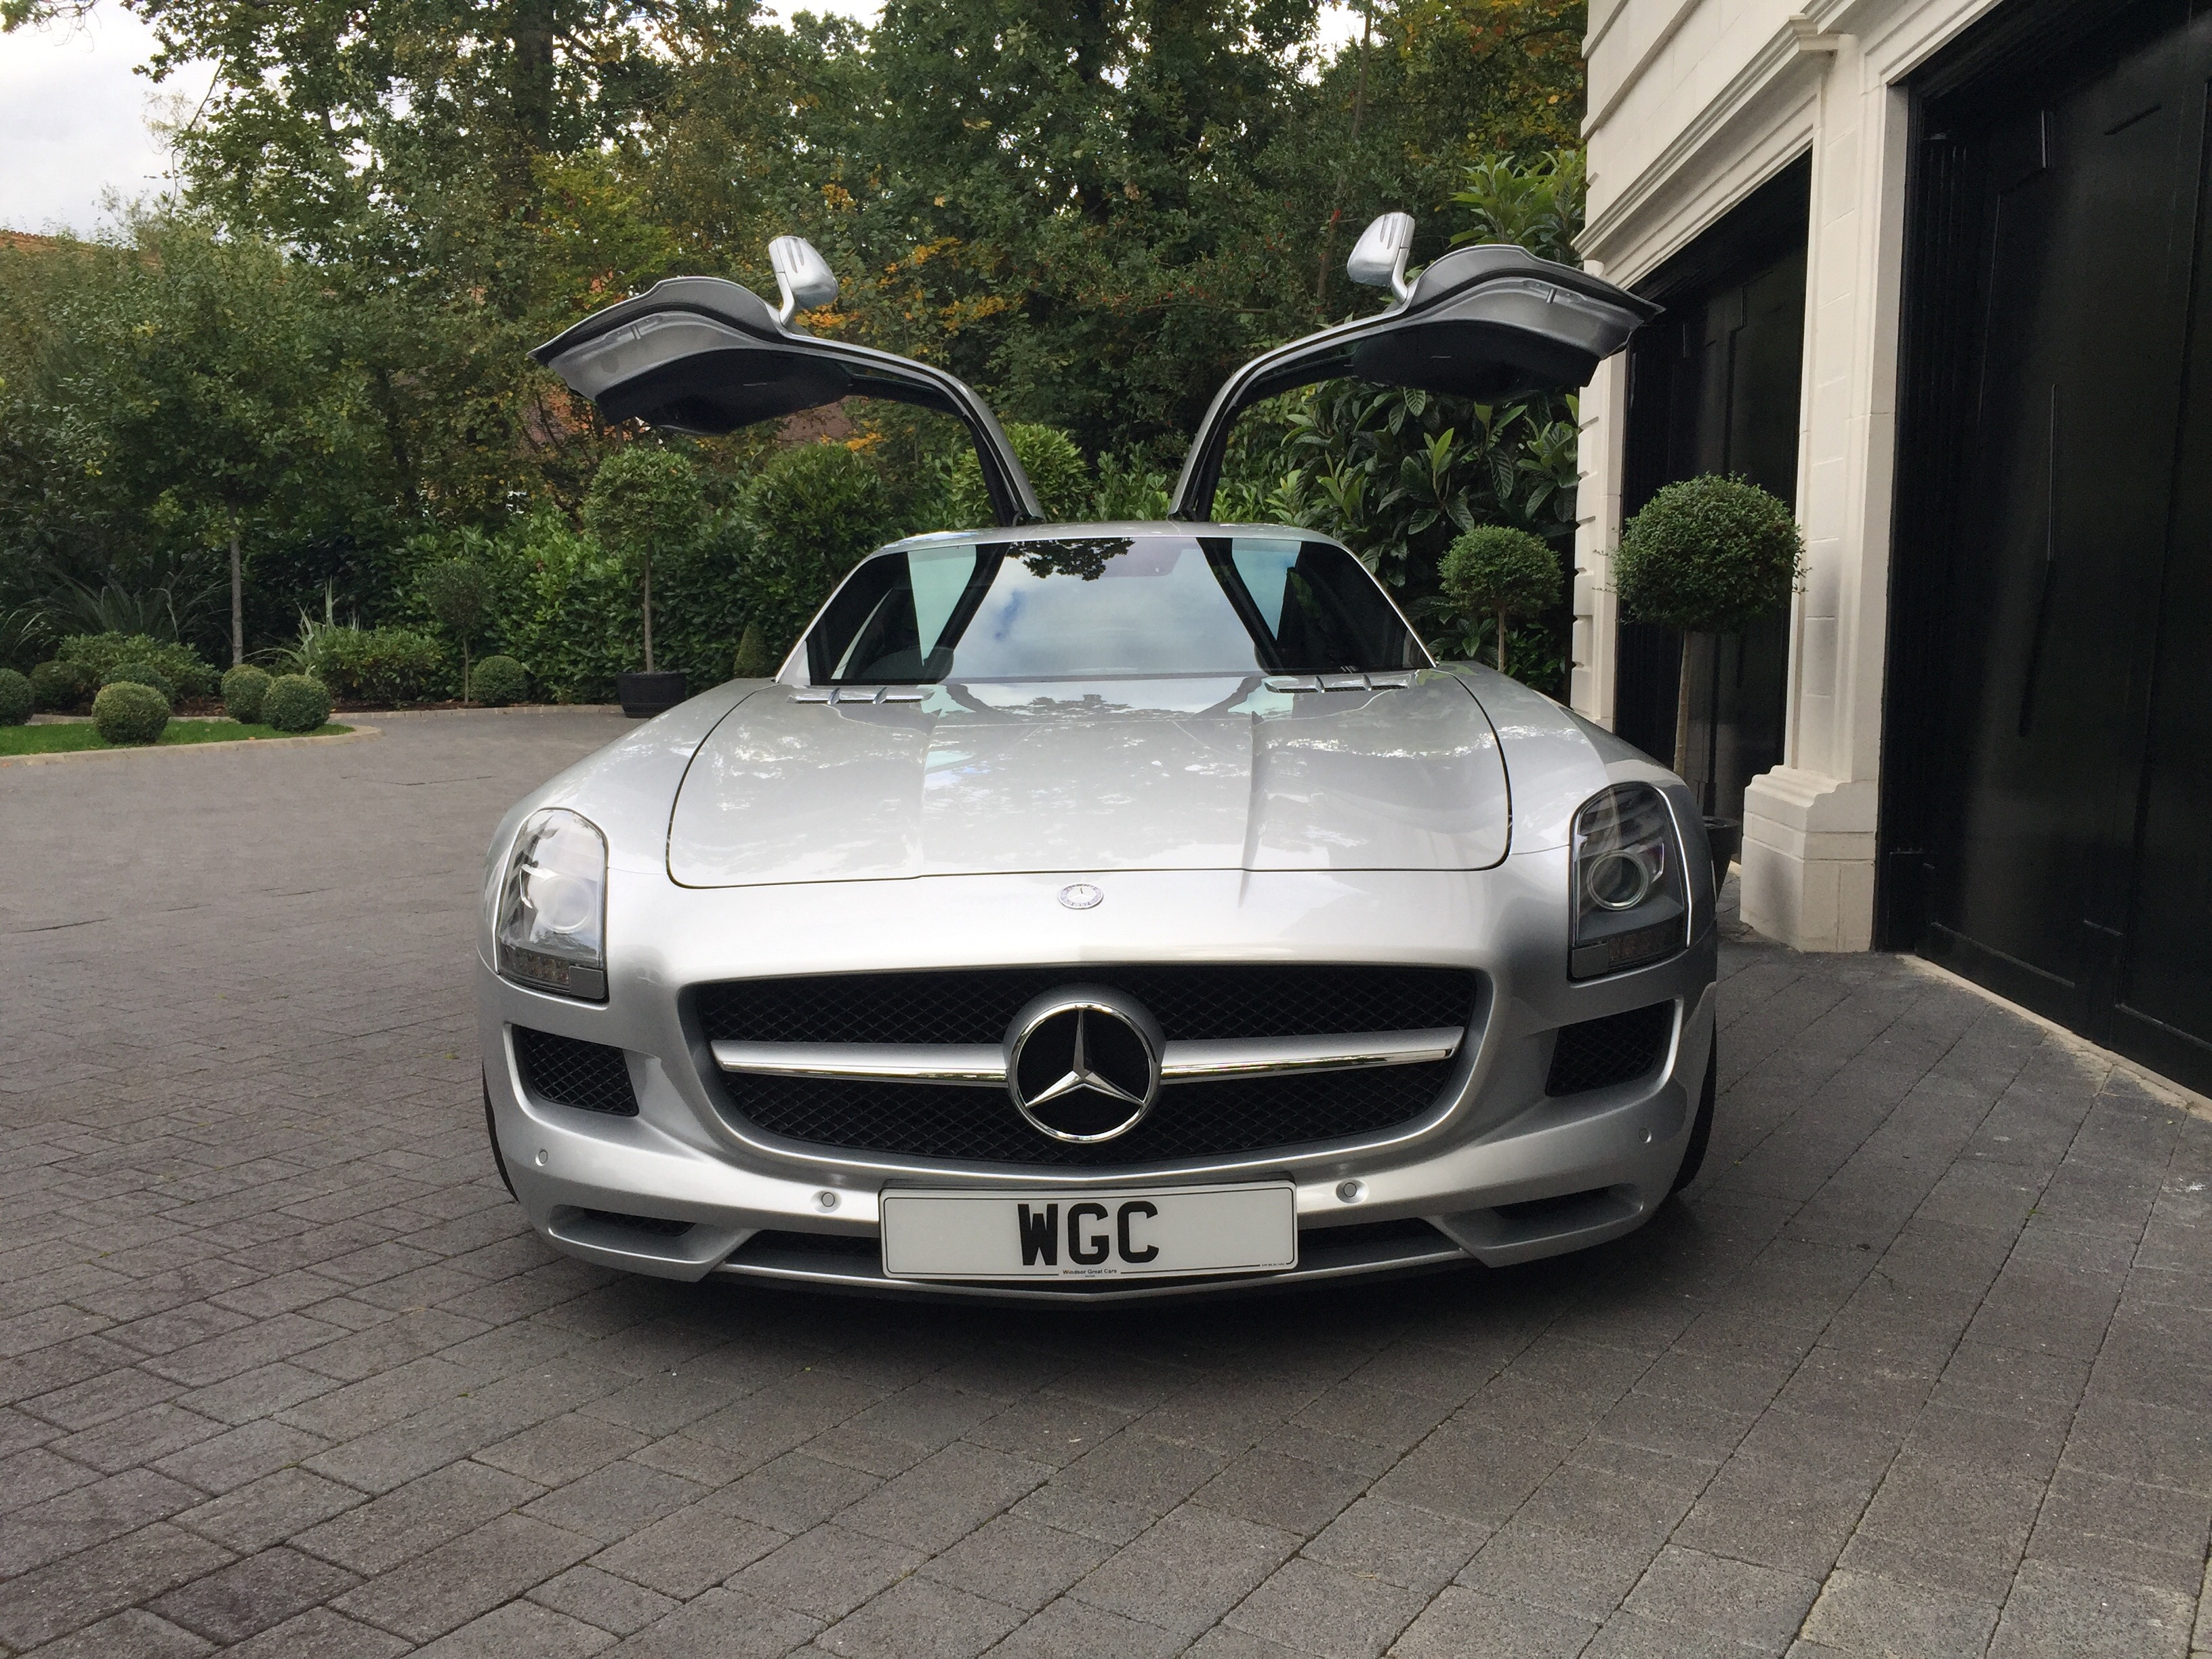 Mercedes benz sls amg windsor great cars for Is a mercedes benz a good car